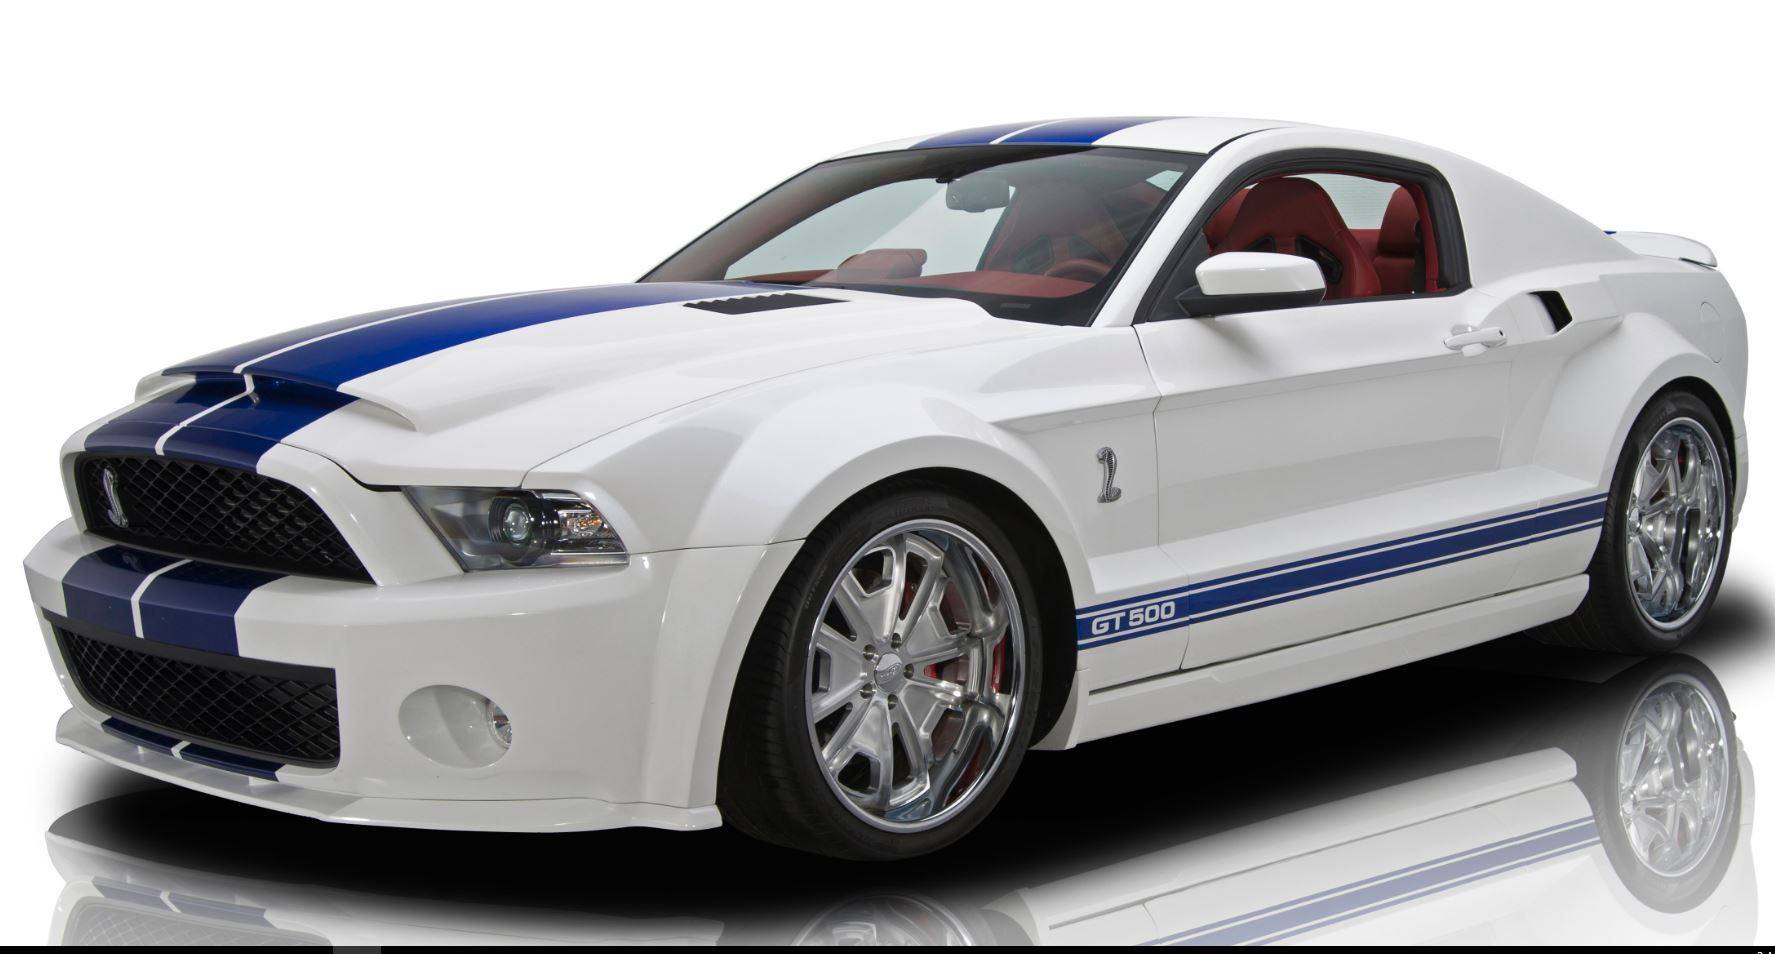 2012 Ford Mustang GT500 Galpin Auto Sports 750hp Shelby